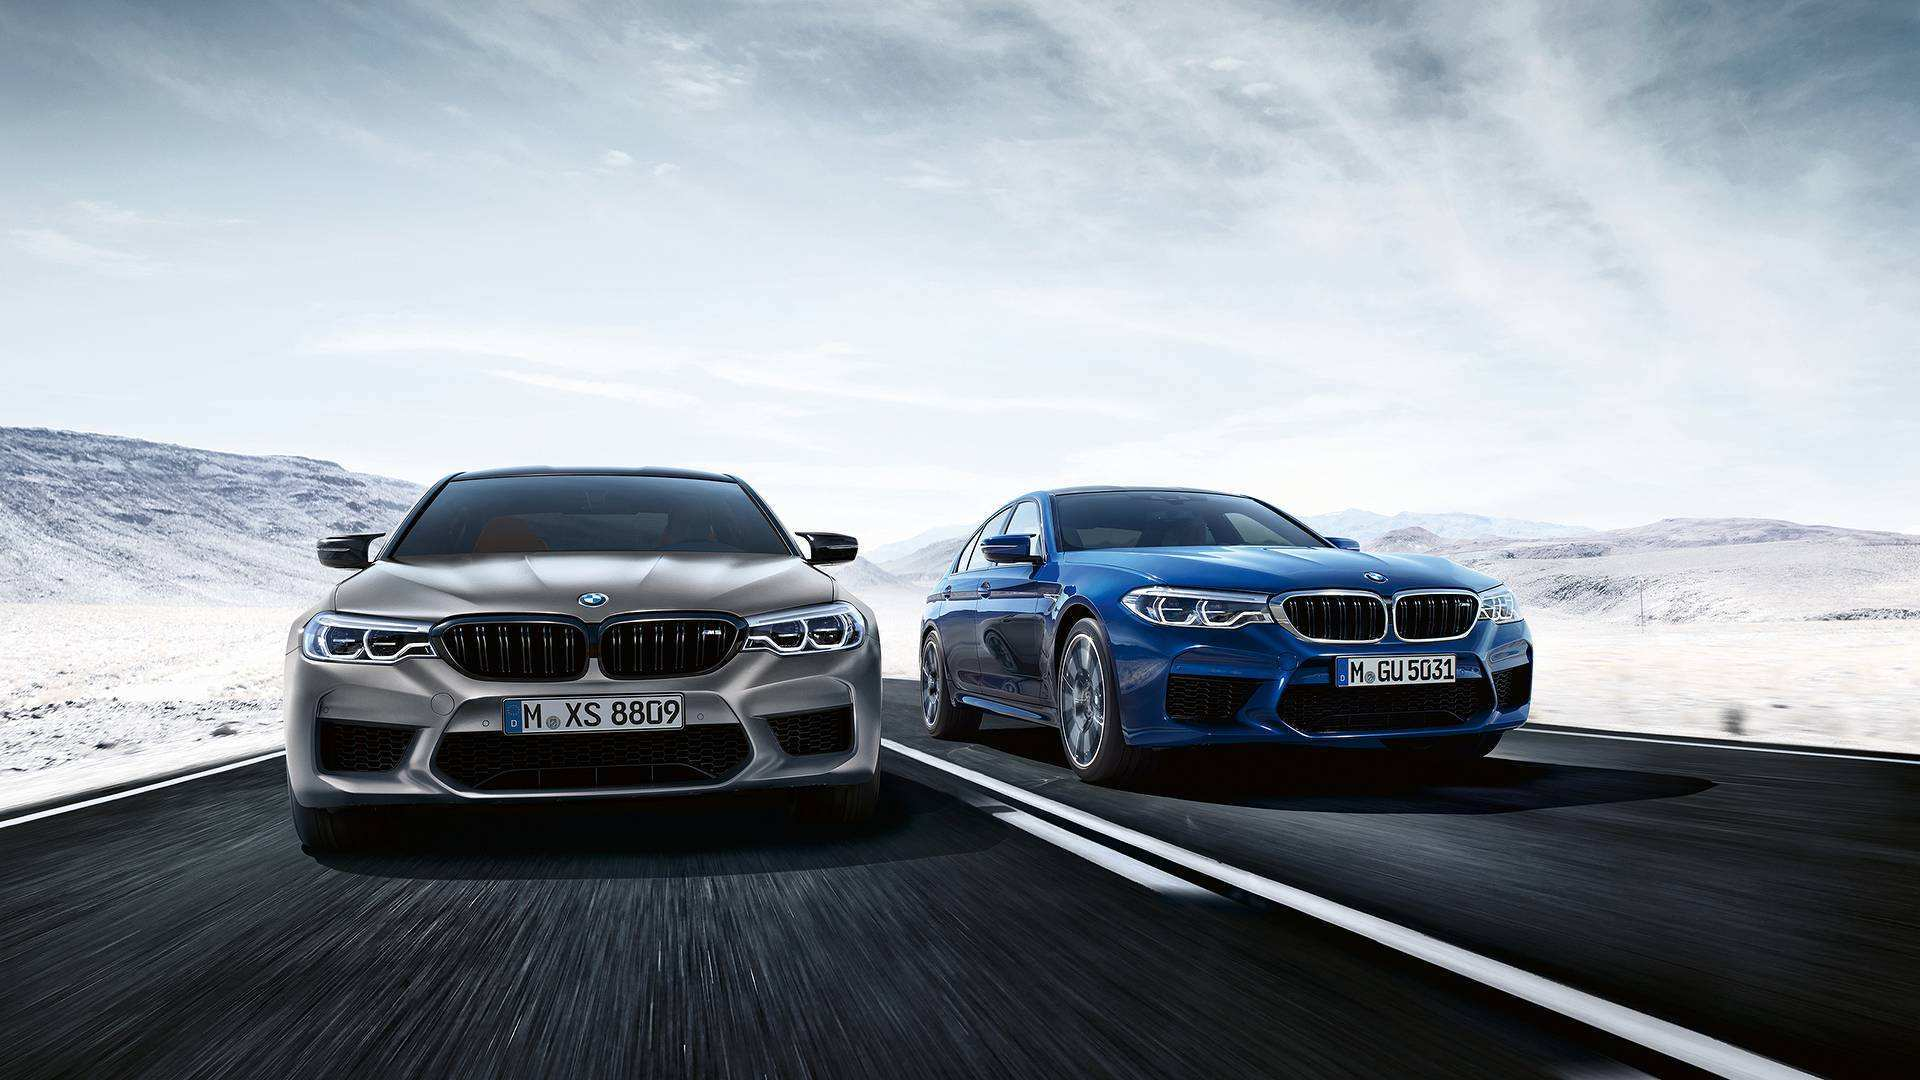 54 Great Bmw M5 Redesign Price and Review with Bmw M5 Redesign